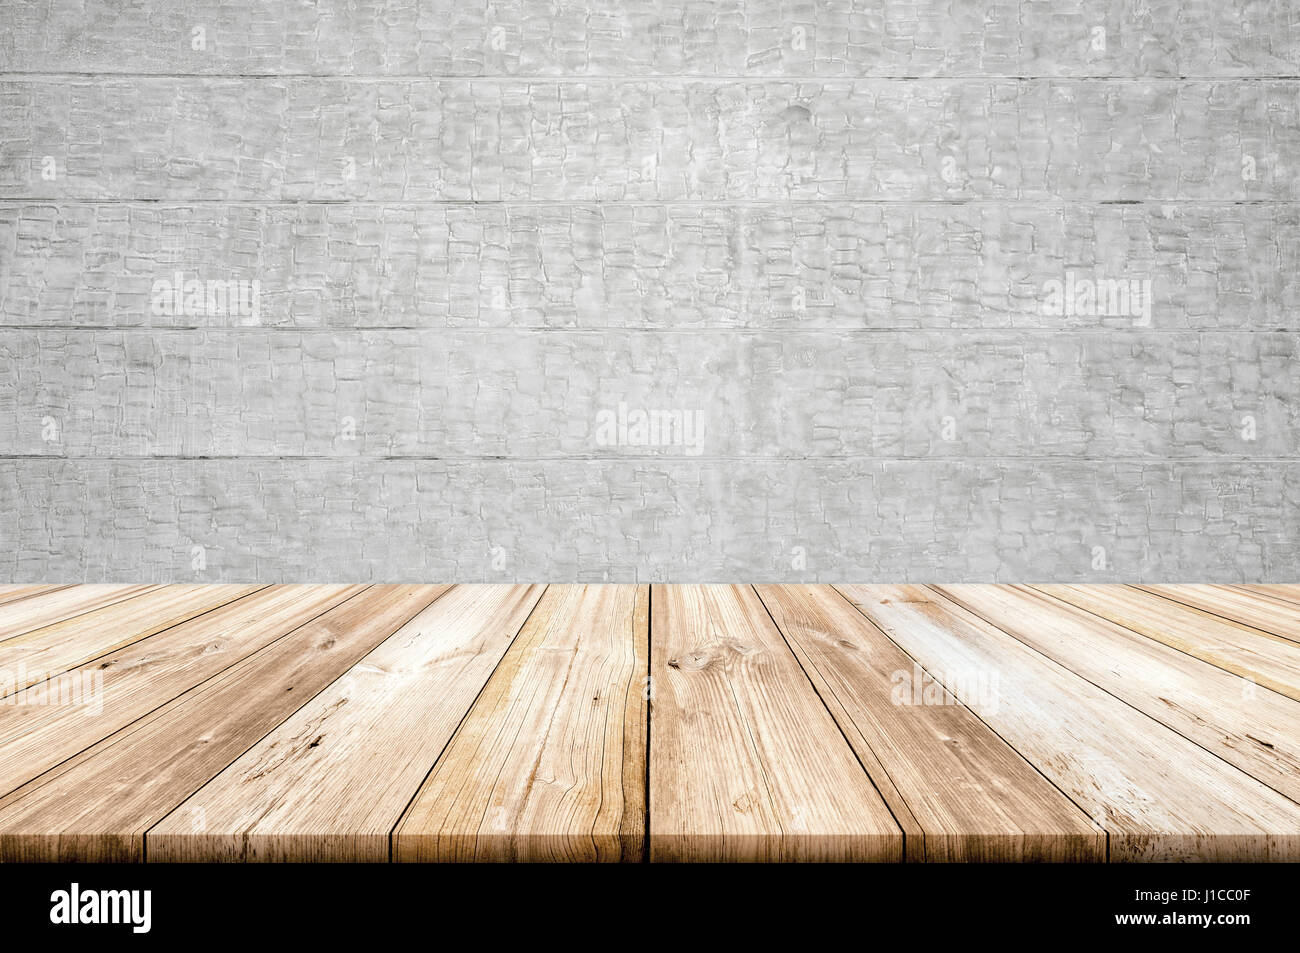 empty light wood table top with concrete wall background